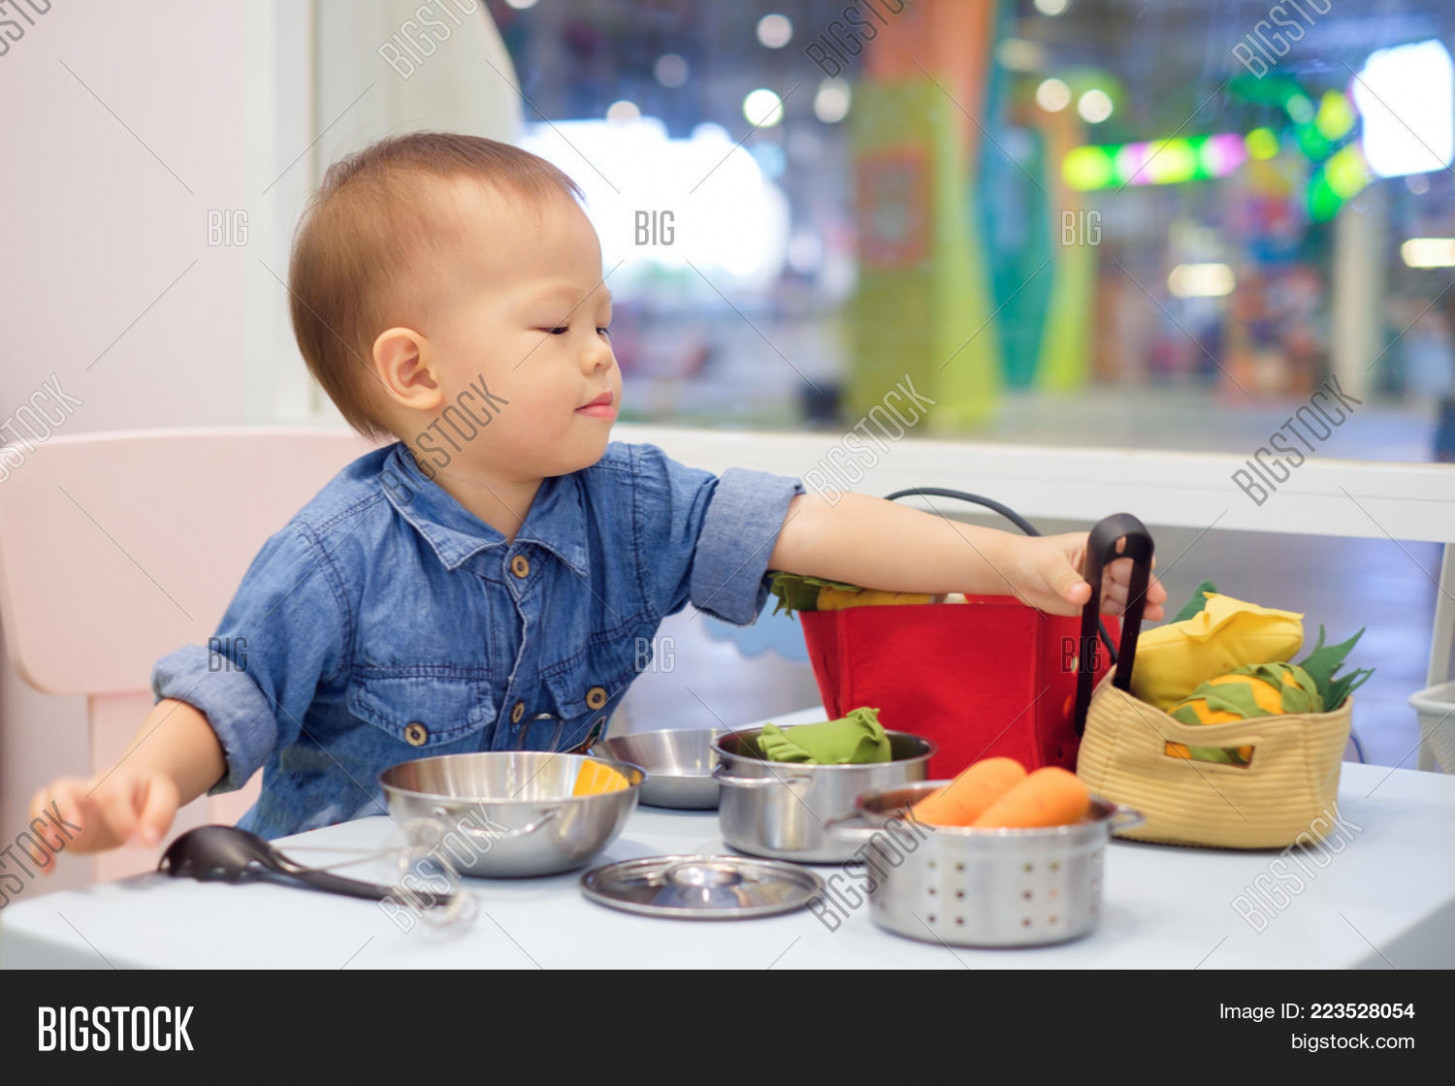 Cute Little Asian 10 Image & Photo (Free Trial) | Bigstock - toddler food recipes for 1 year old